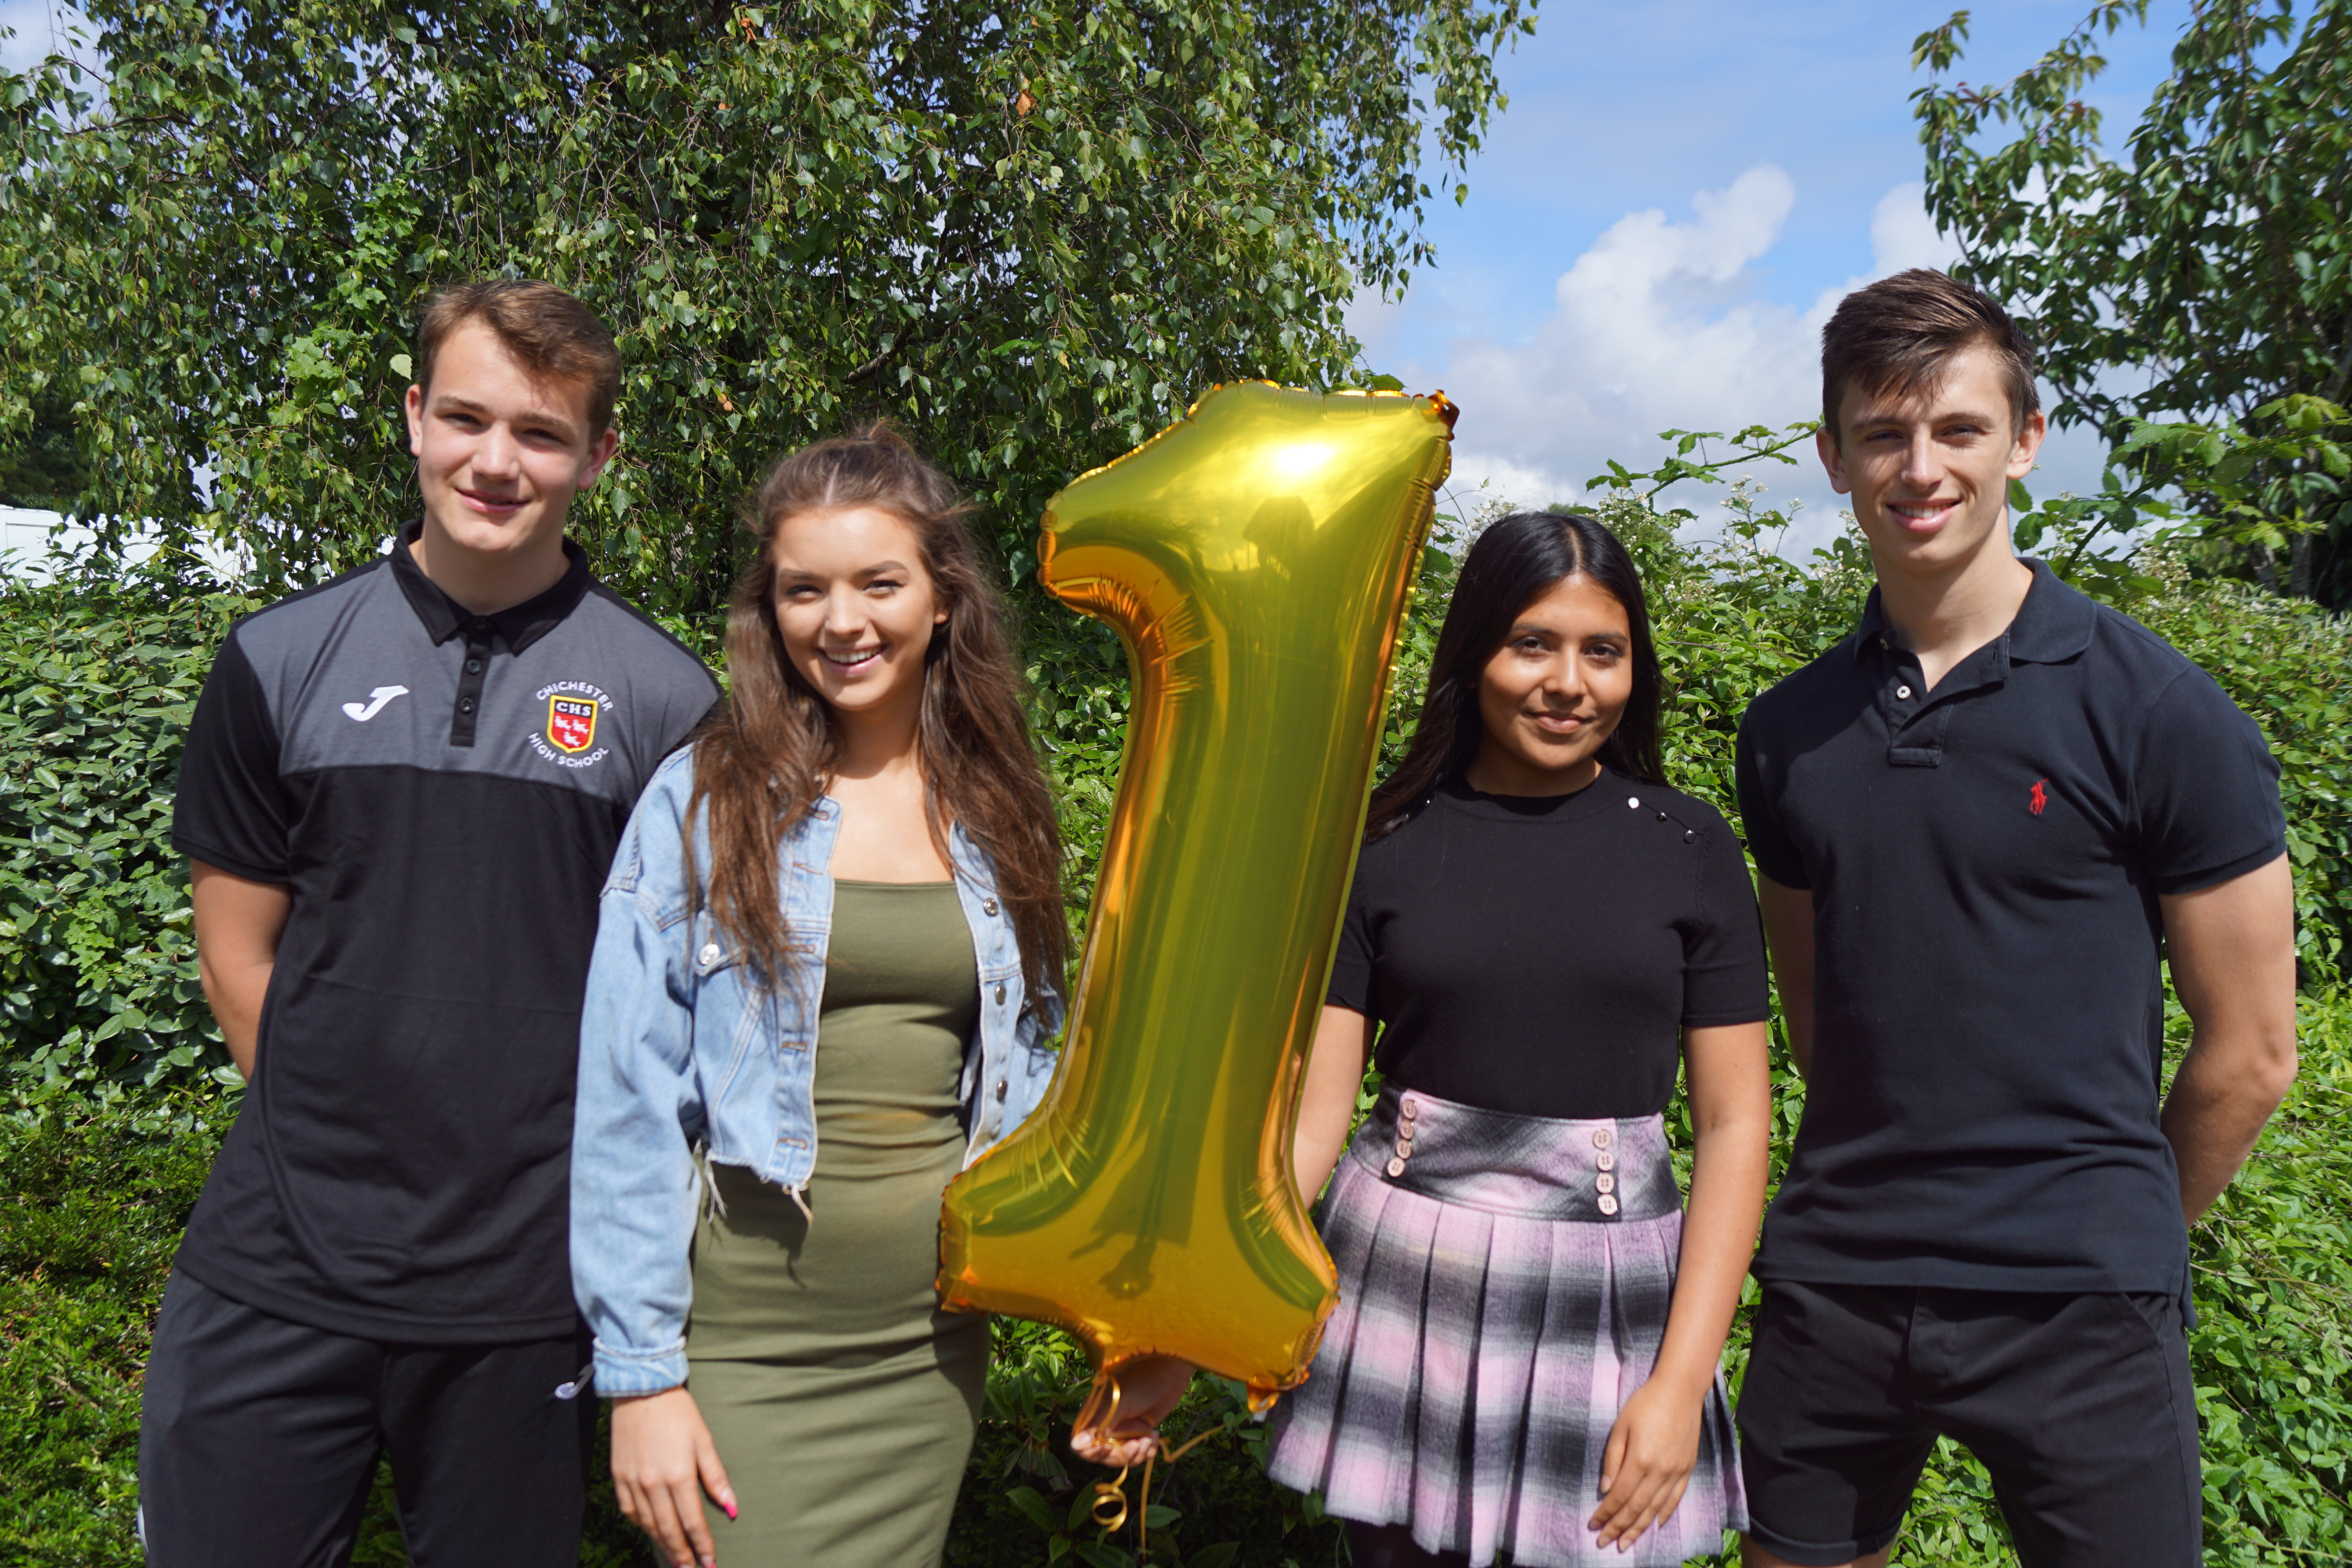 Chs use 6th form outstanding1